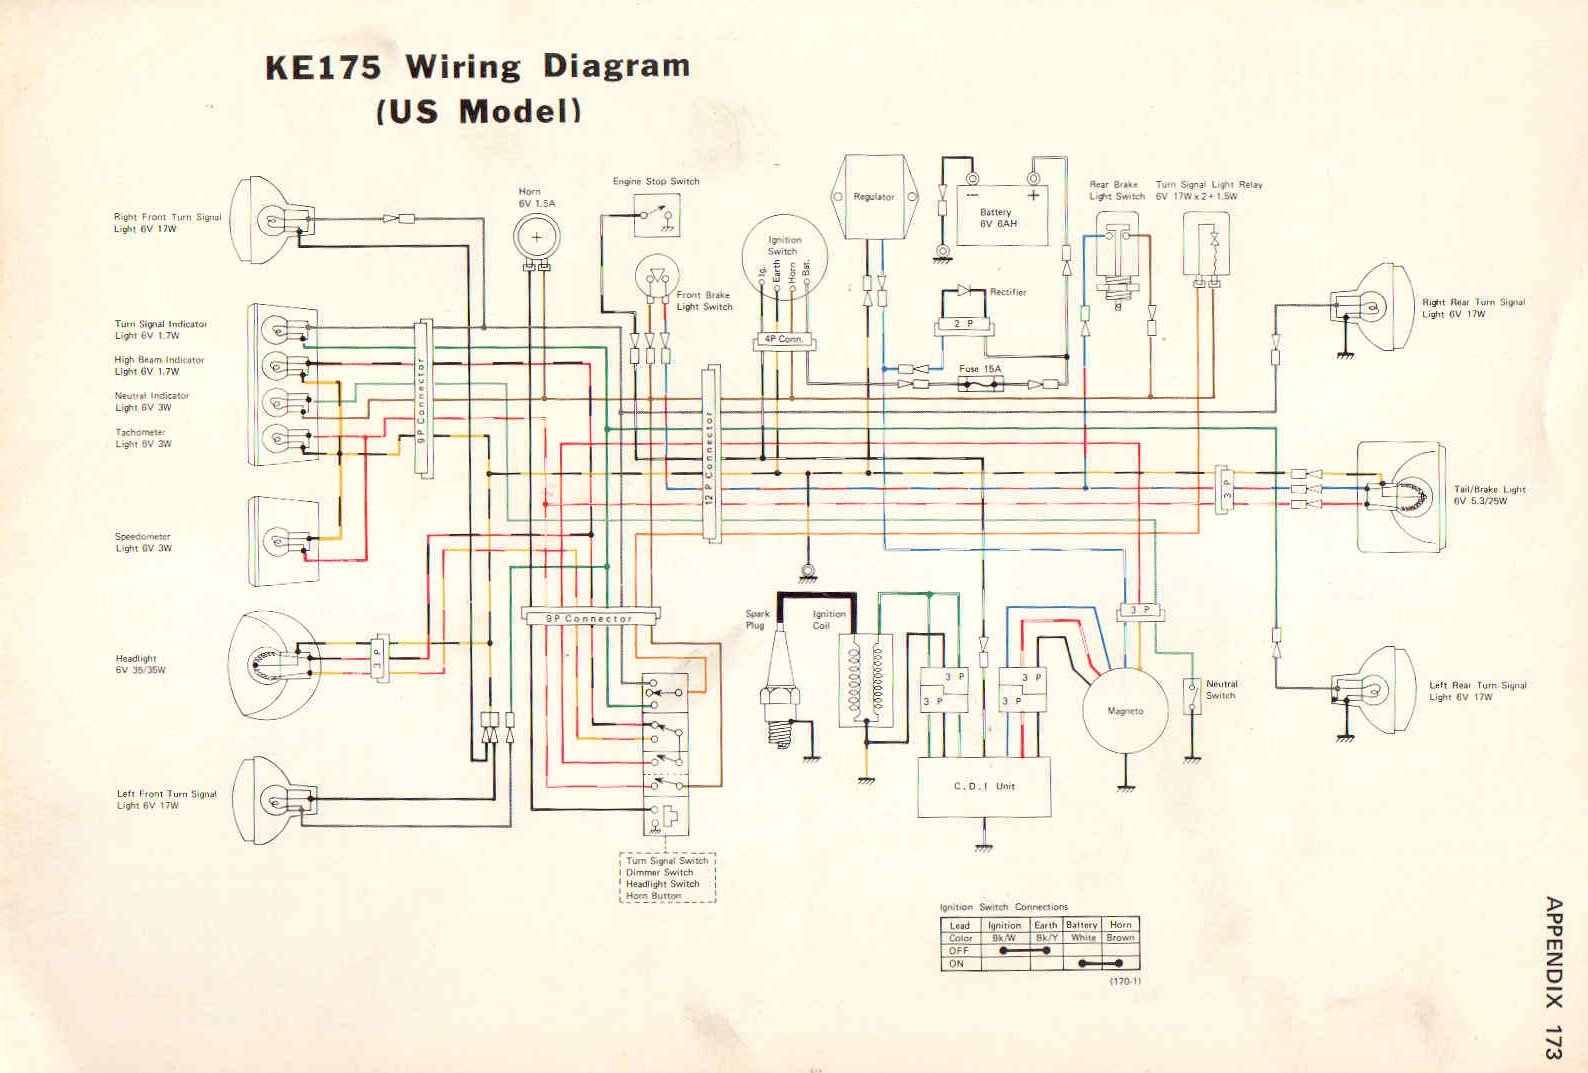 76 77 78 KE175 Wiring Diagram 76 77 78 ke175 wiring diagram 1978 yamaha dt 175 wiring diagram at suagrazia.org